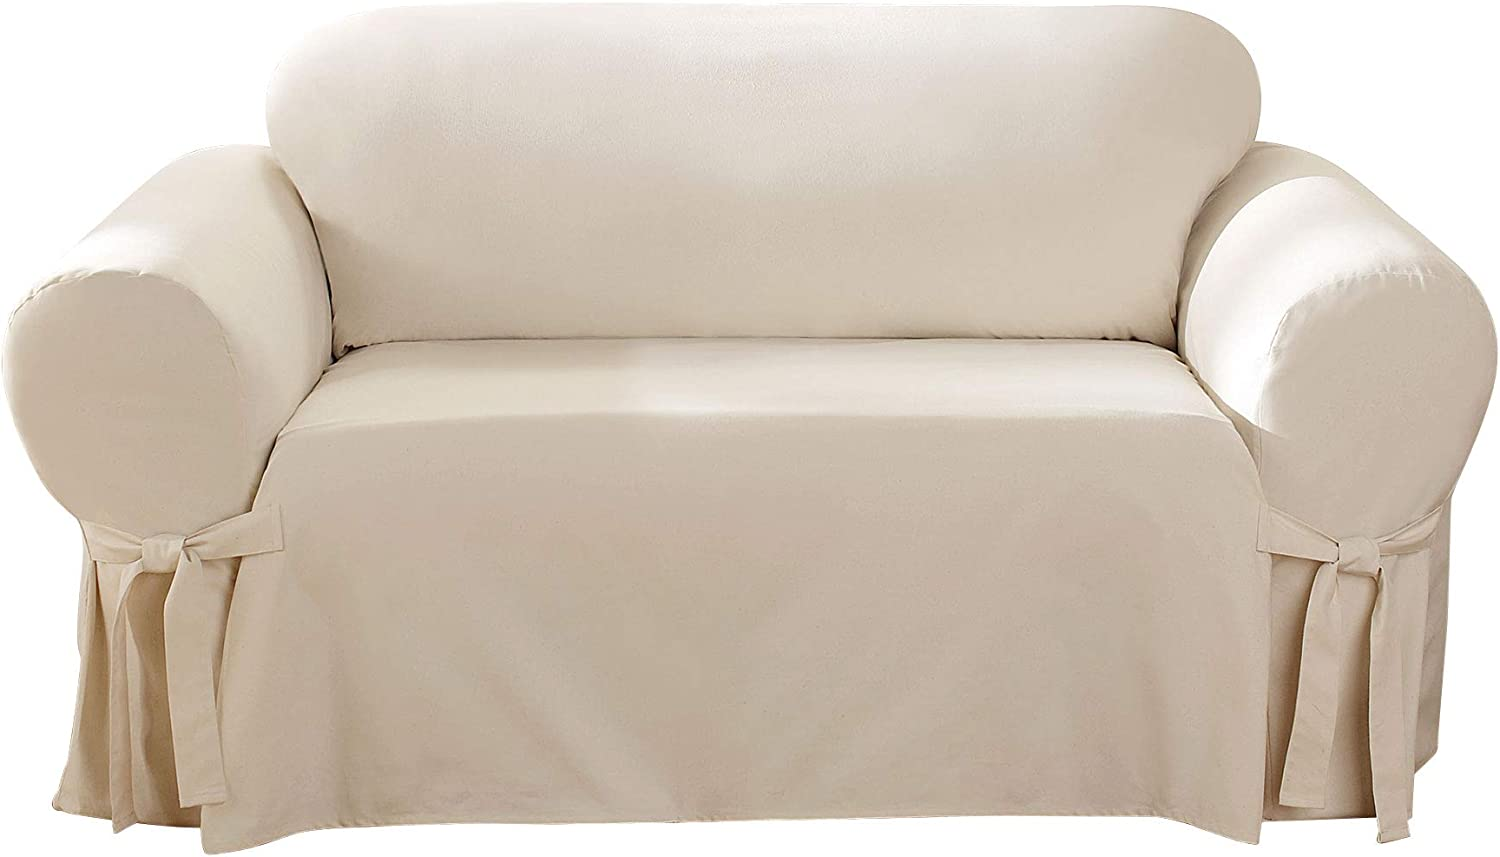 SureFit Home Décor Duck Solid Box Cushion Sofa One Piece Slipcover, Relaxed Fit, 100% Cotton, Machine Washable, Natural Color